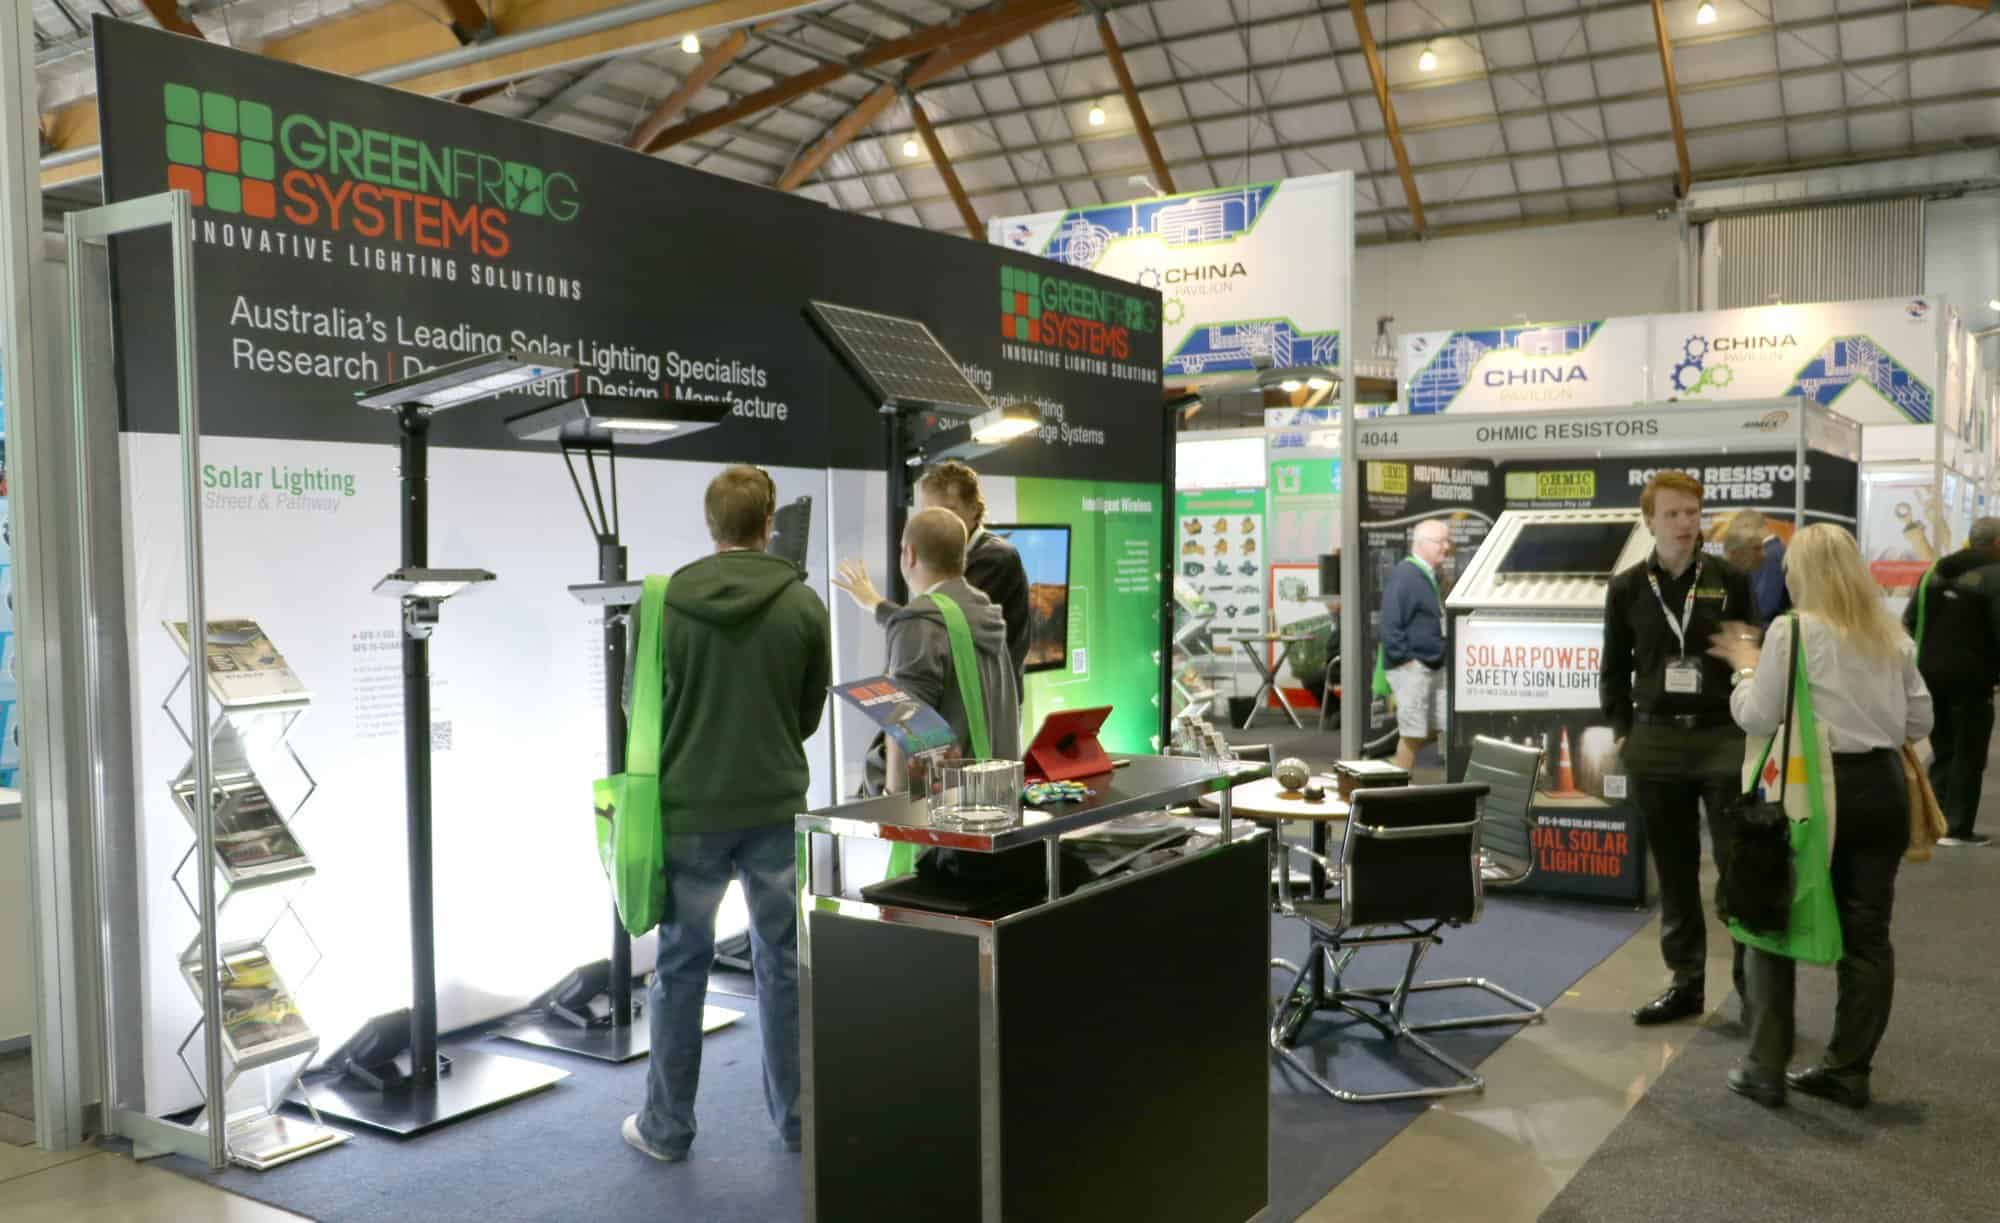 Green Frog Systems Exhibiting at AIMEX